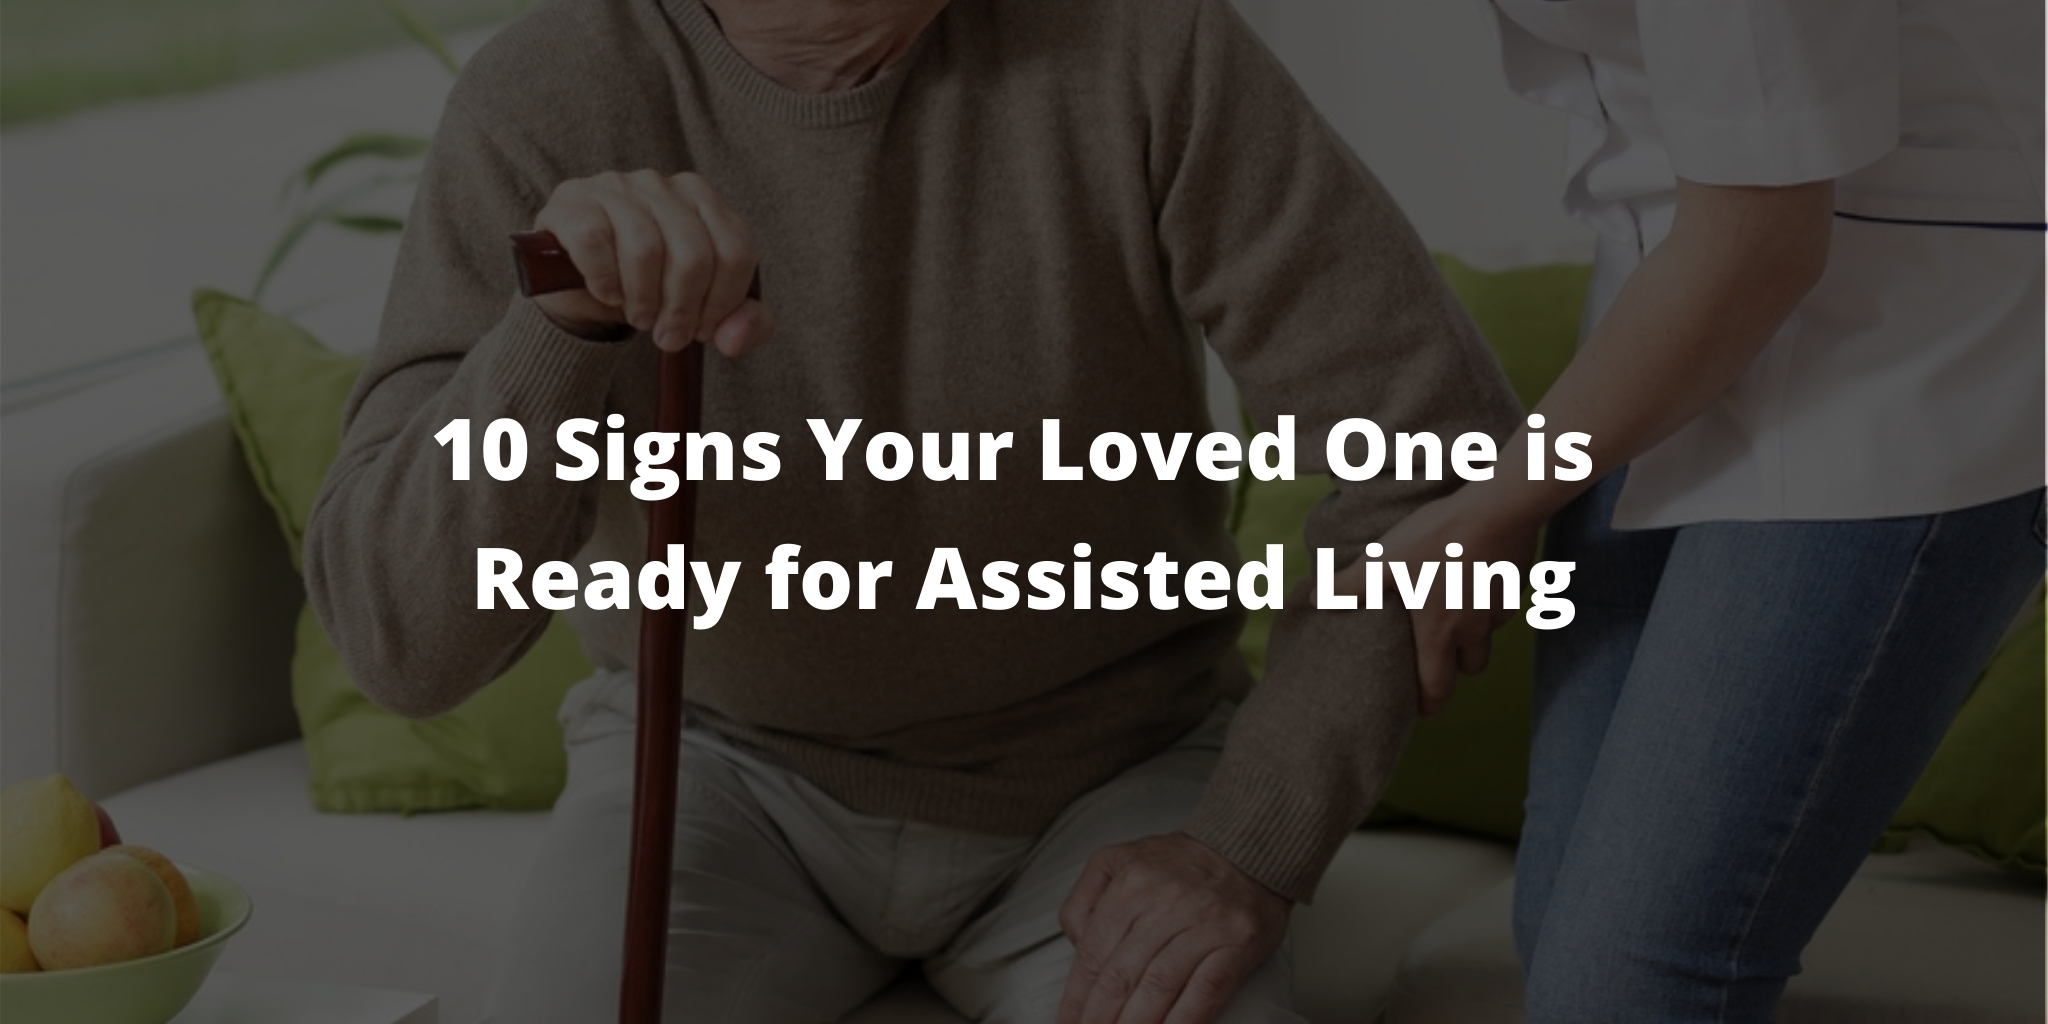 10 Signs Your Loved One is Ready for Assisted Living